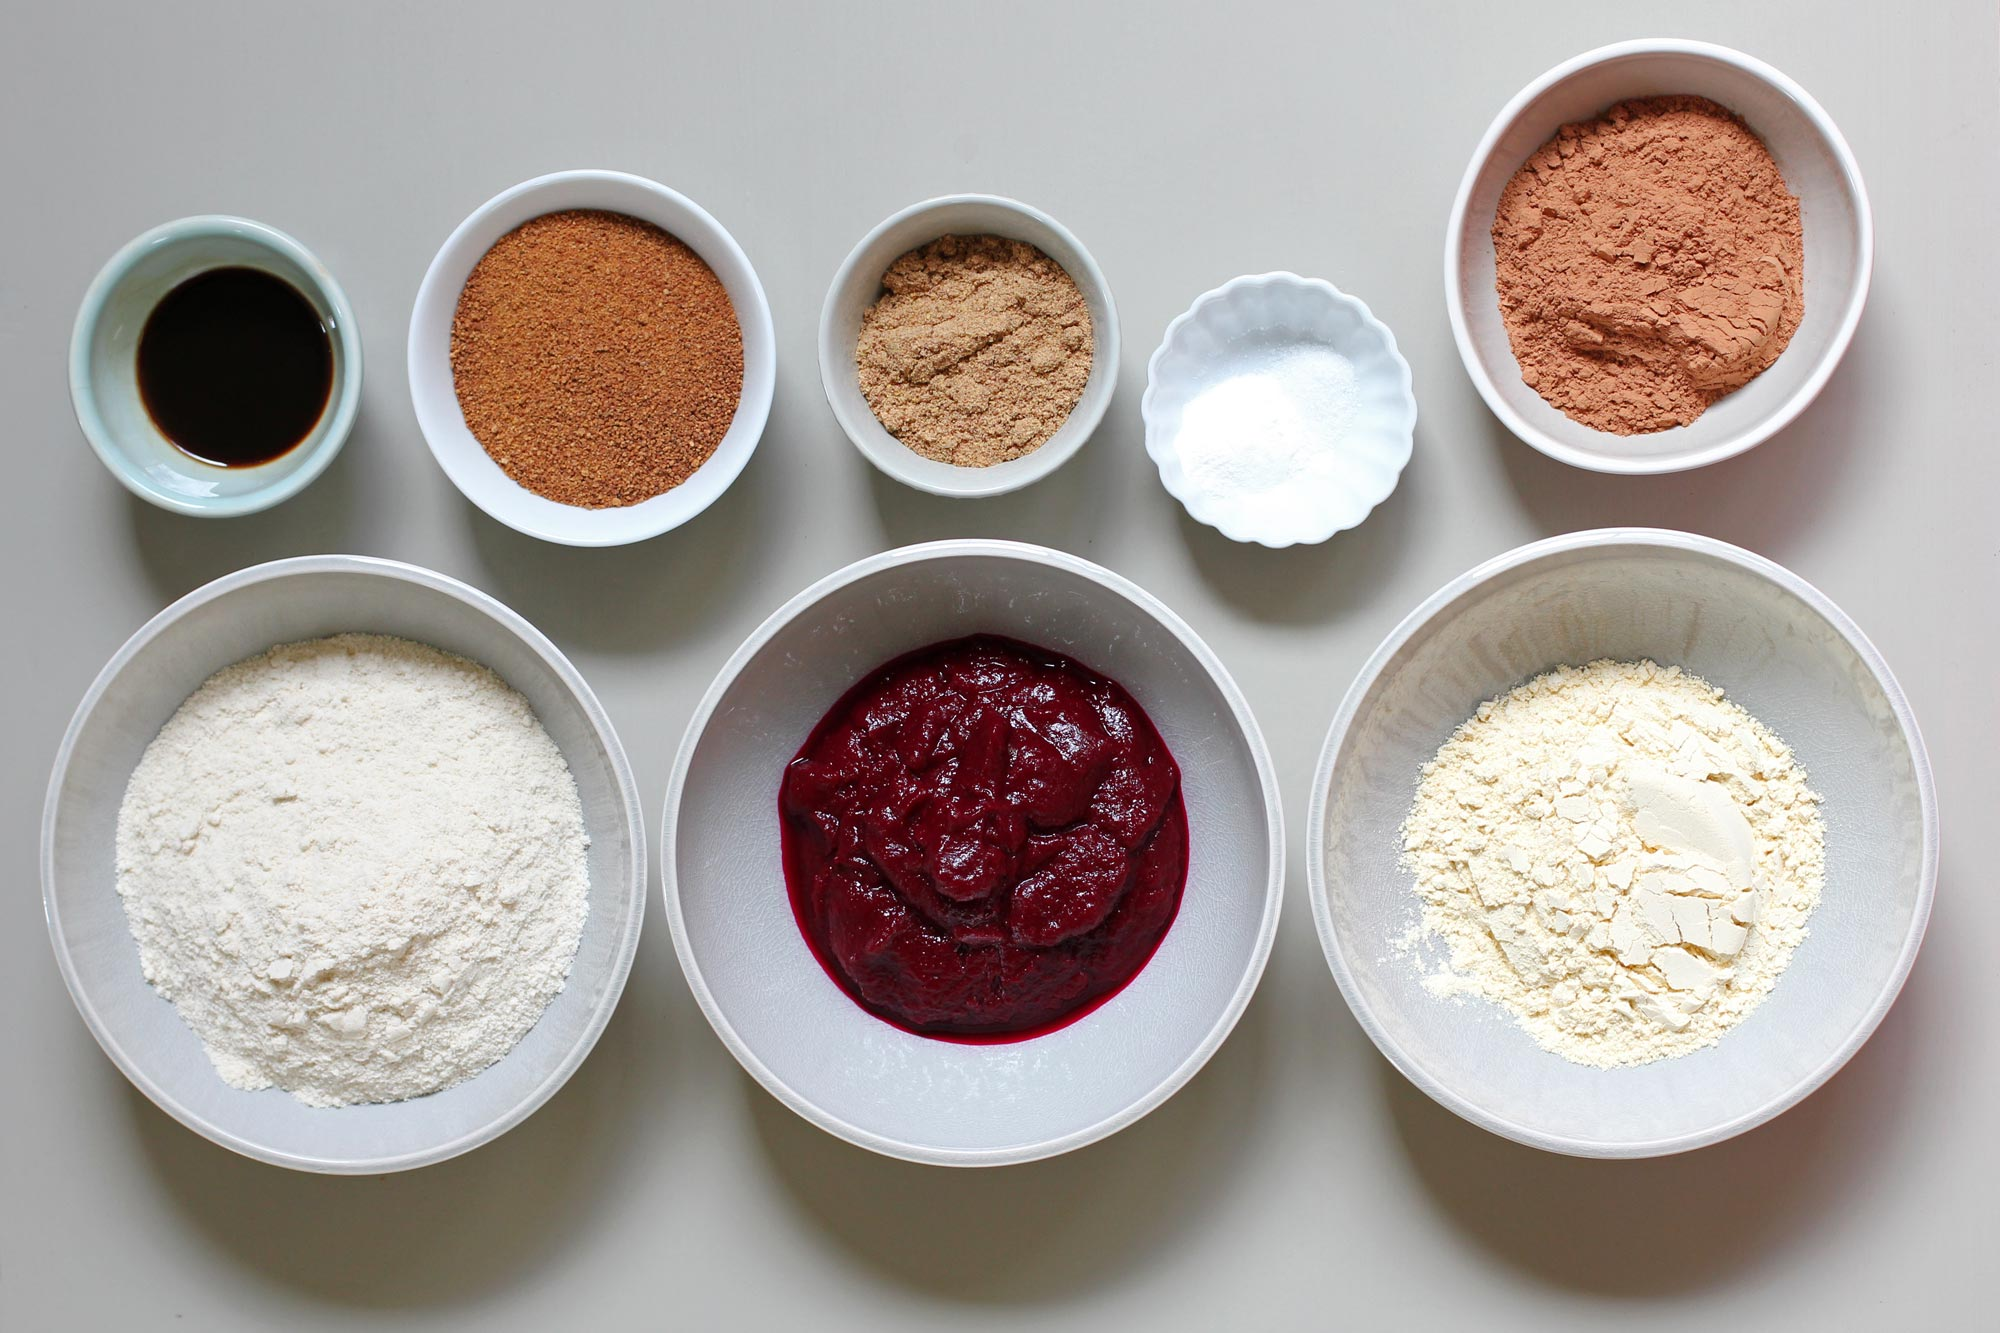 ingredients for chocolate beet cupcakes with chai frosting